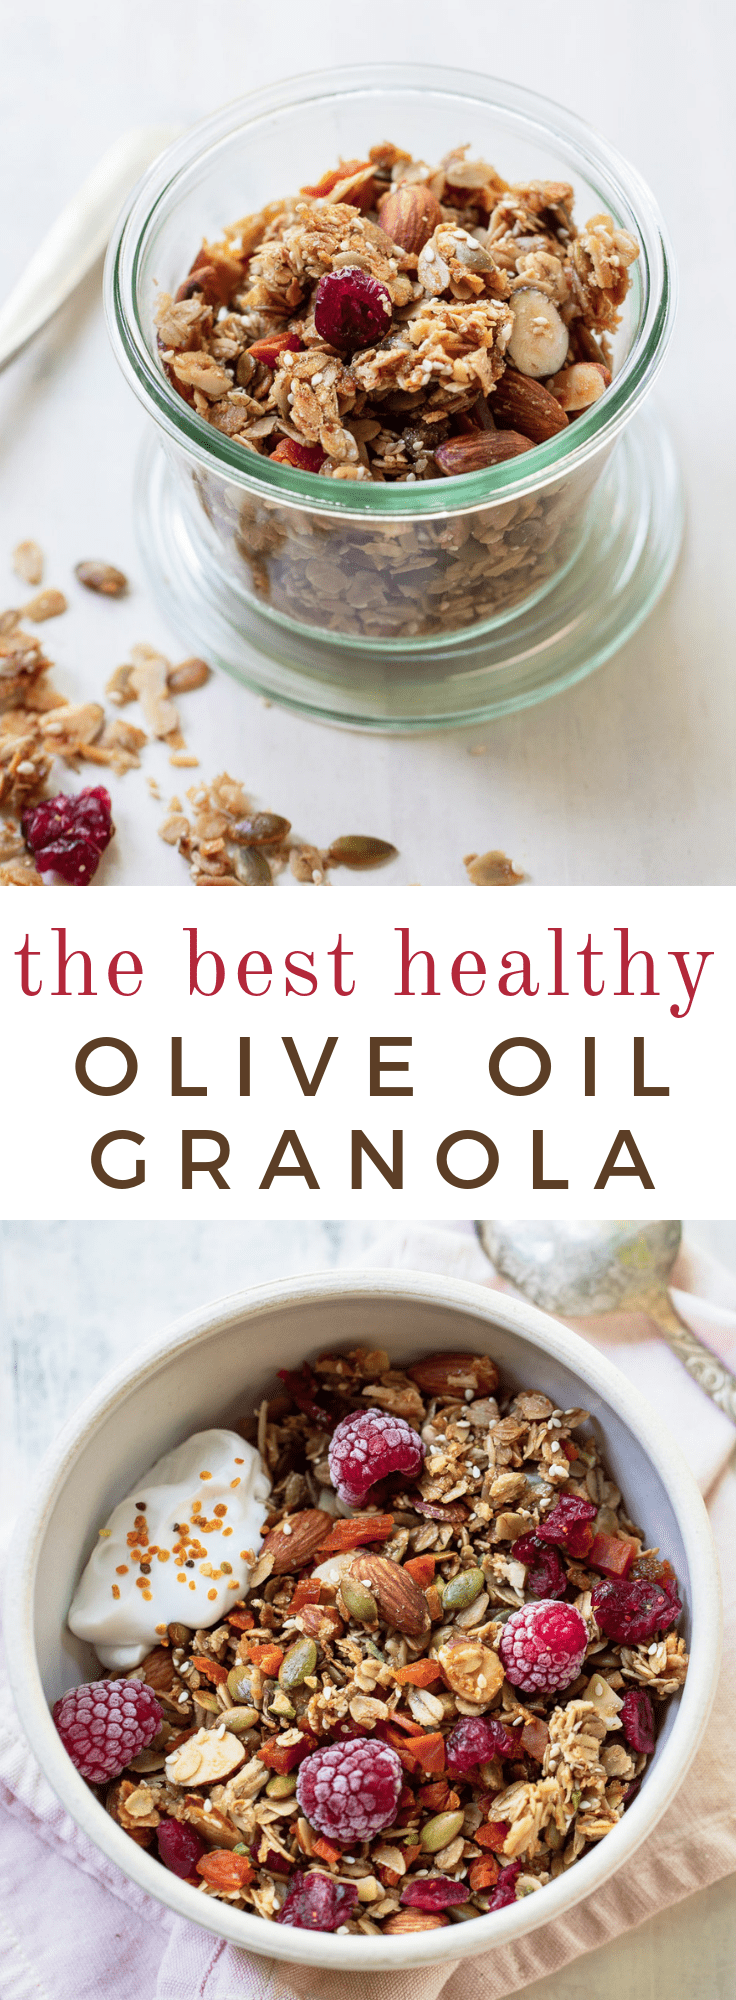 The Best Olive Oil Granola Recipe